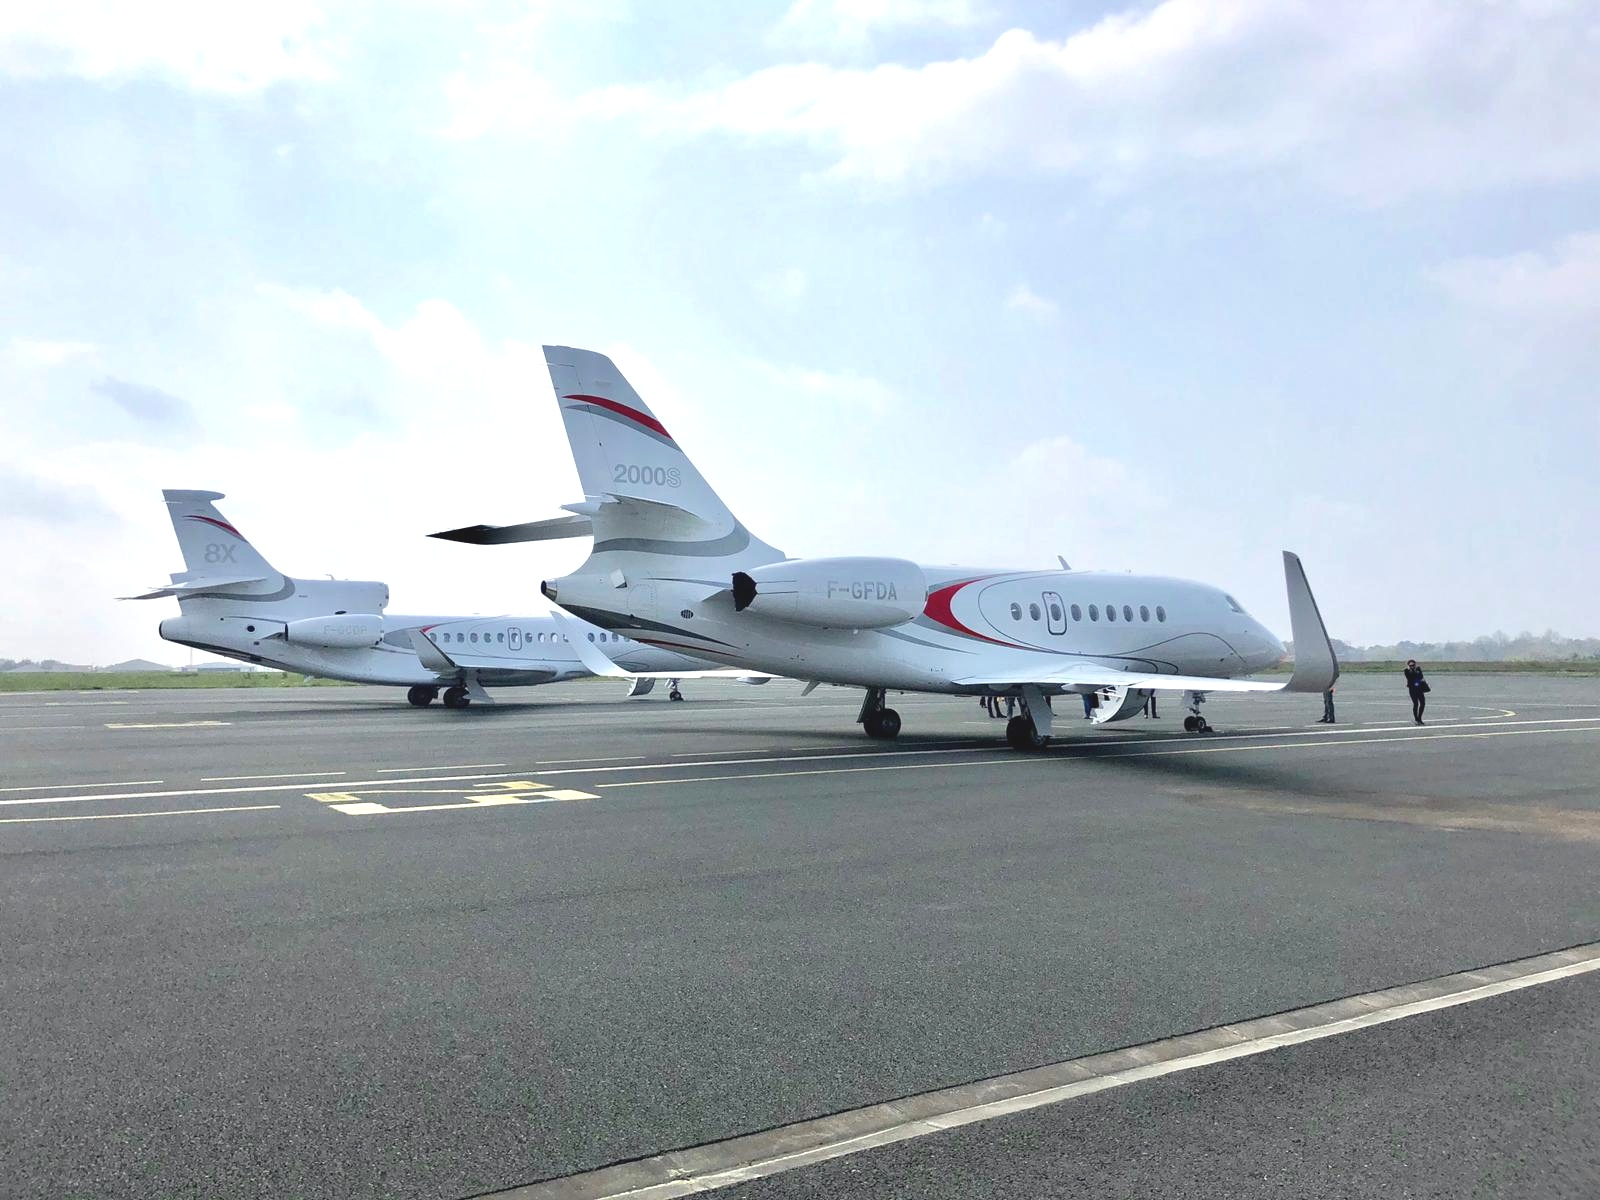 KJET, An Executive Jet Management Company Visits Dassault Aviation; And Flys In Two Dassault Falcon: Falcon 2000S and Falcon 8X